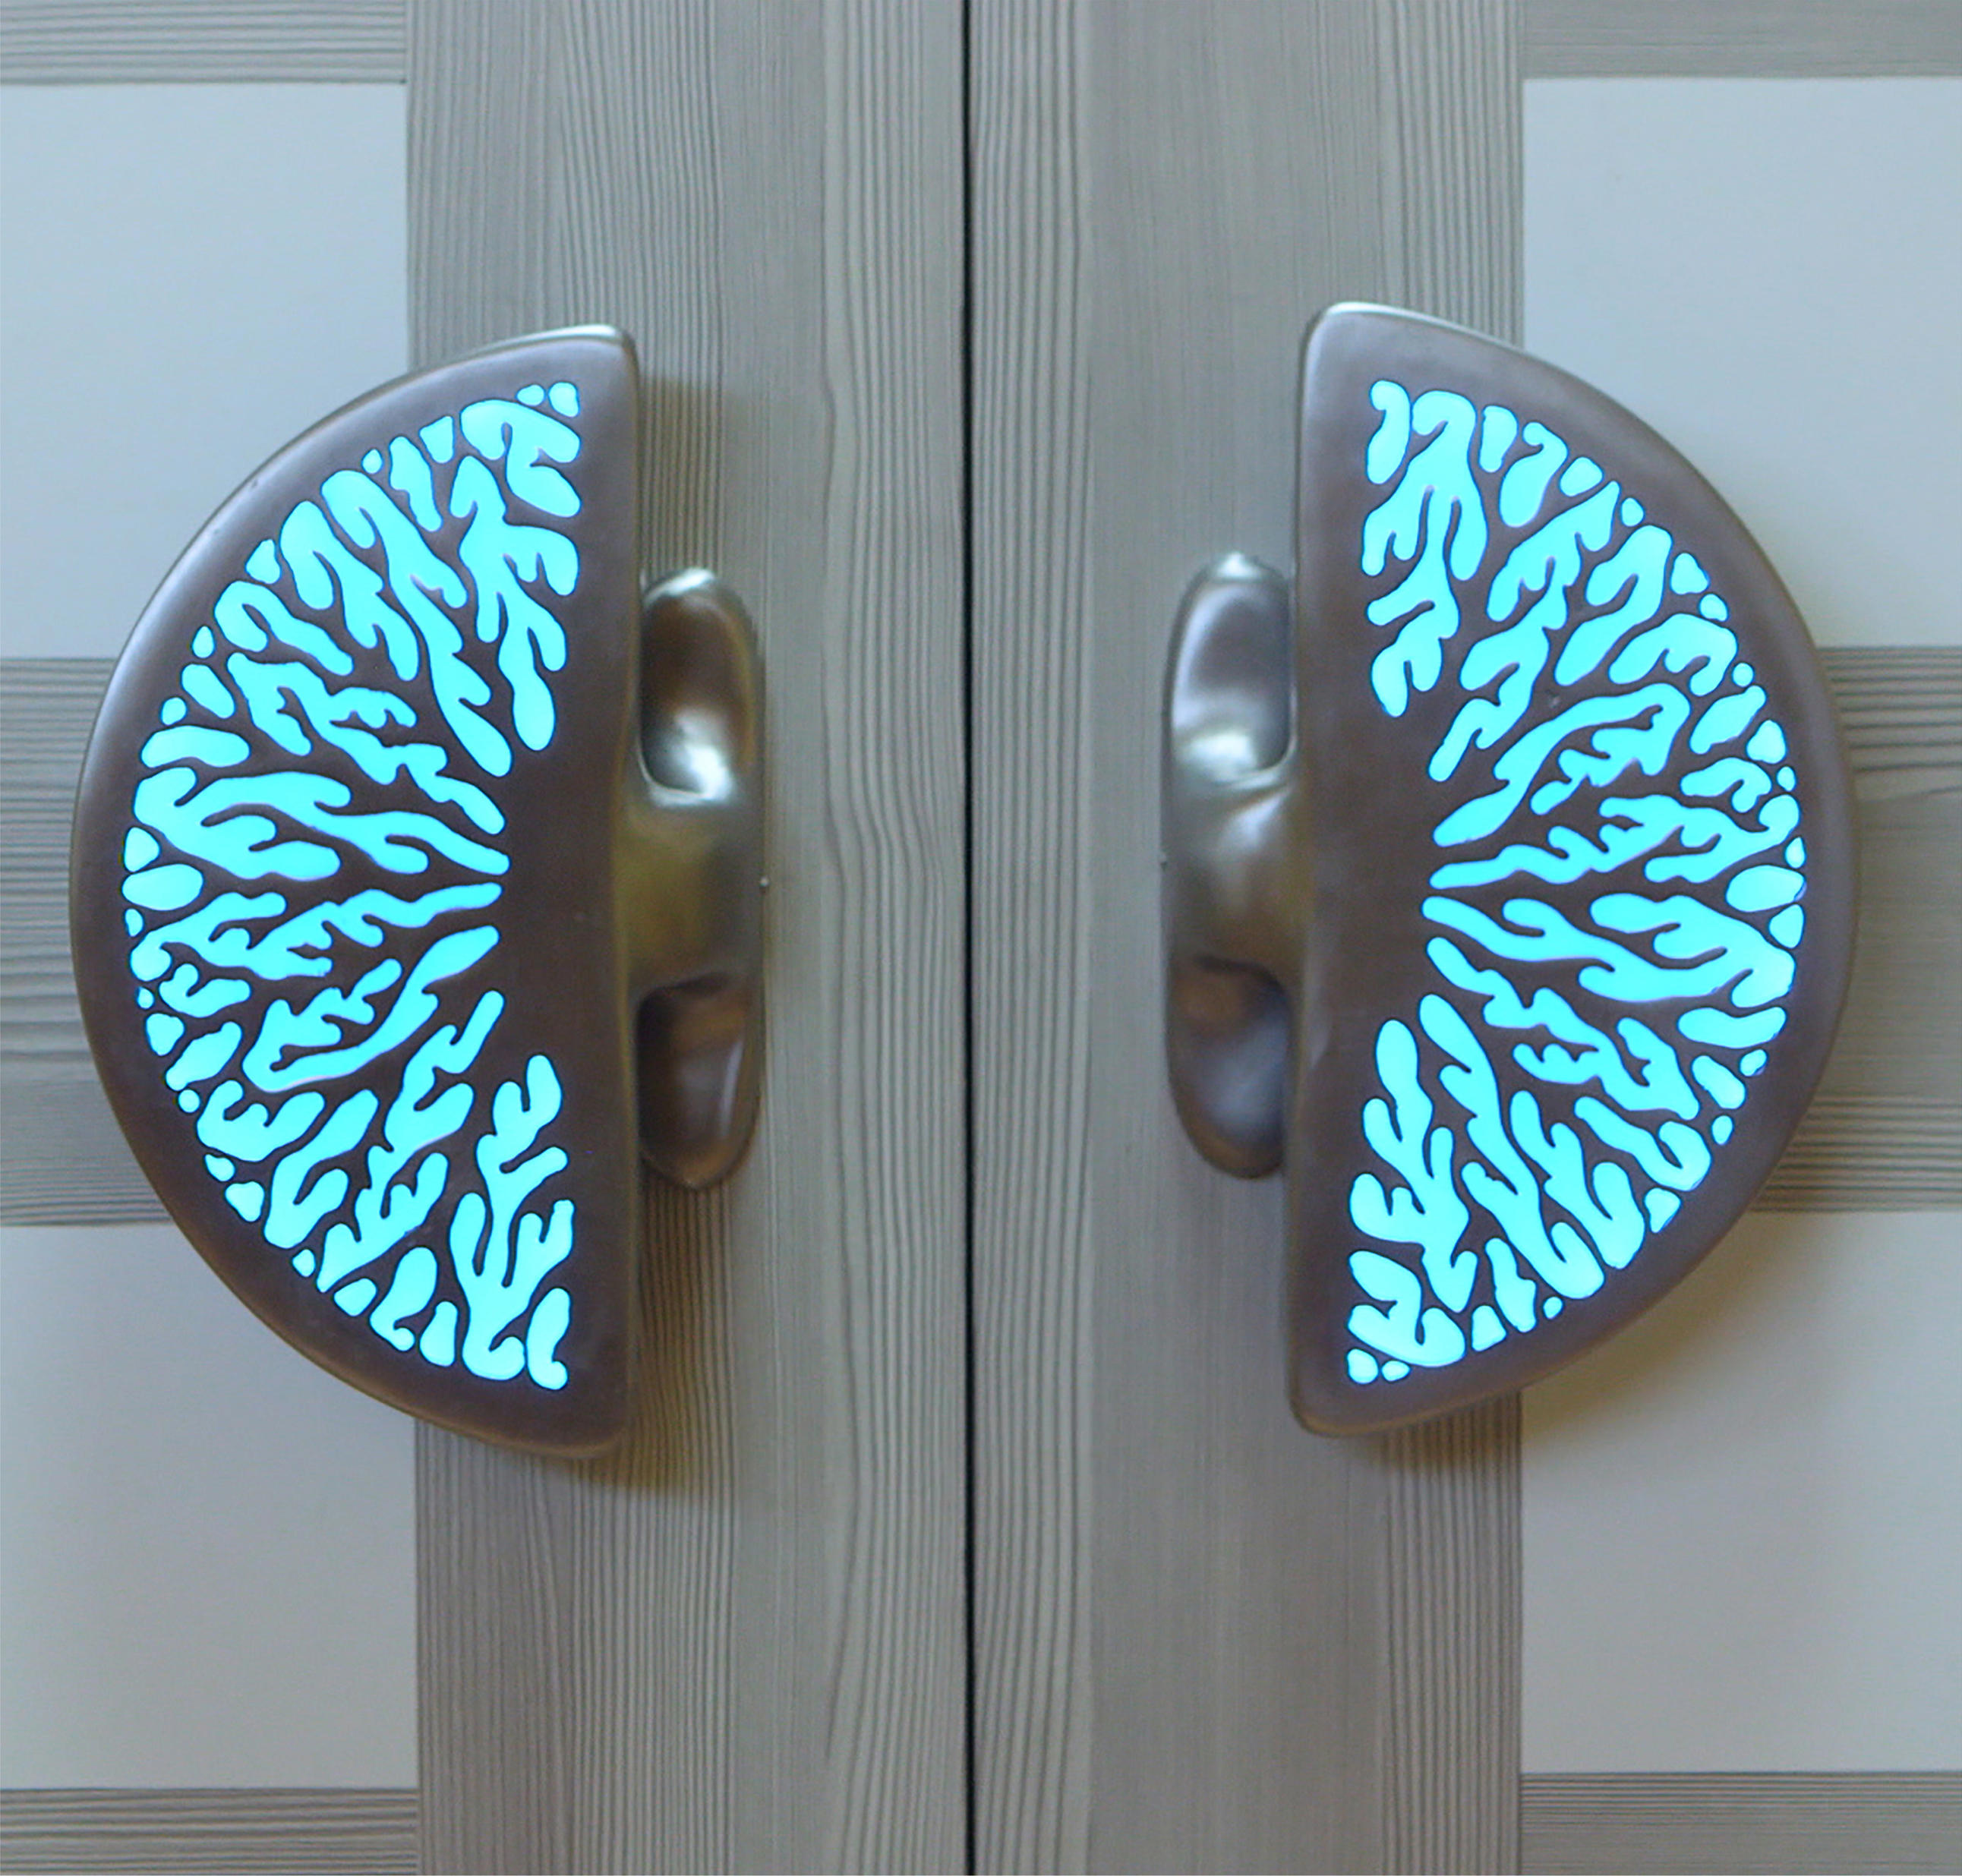 CORAL - ILLUMINATED DOOR HANDLE - Pull handles from Martin Pierce ...